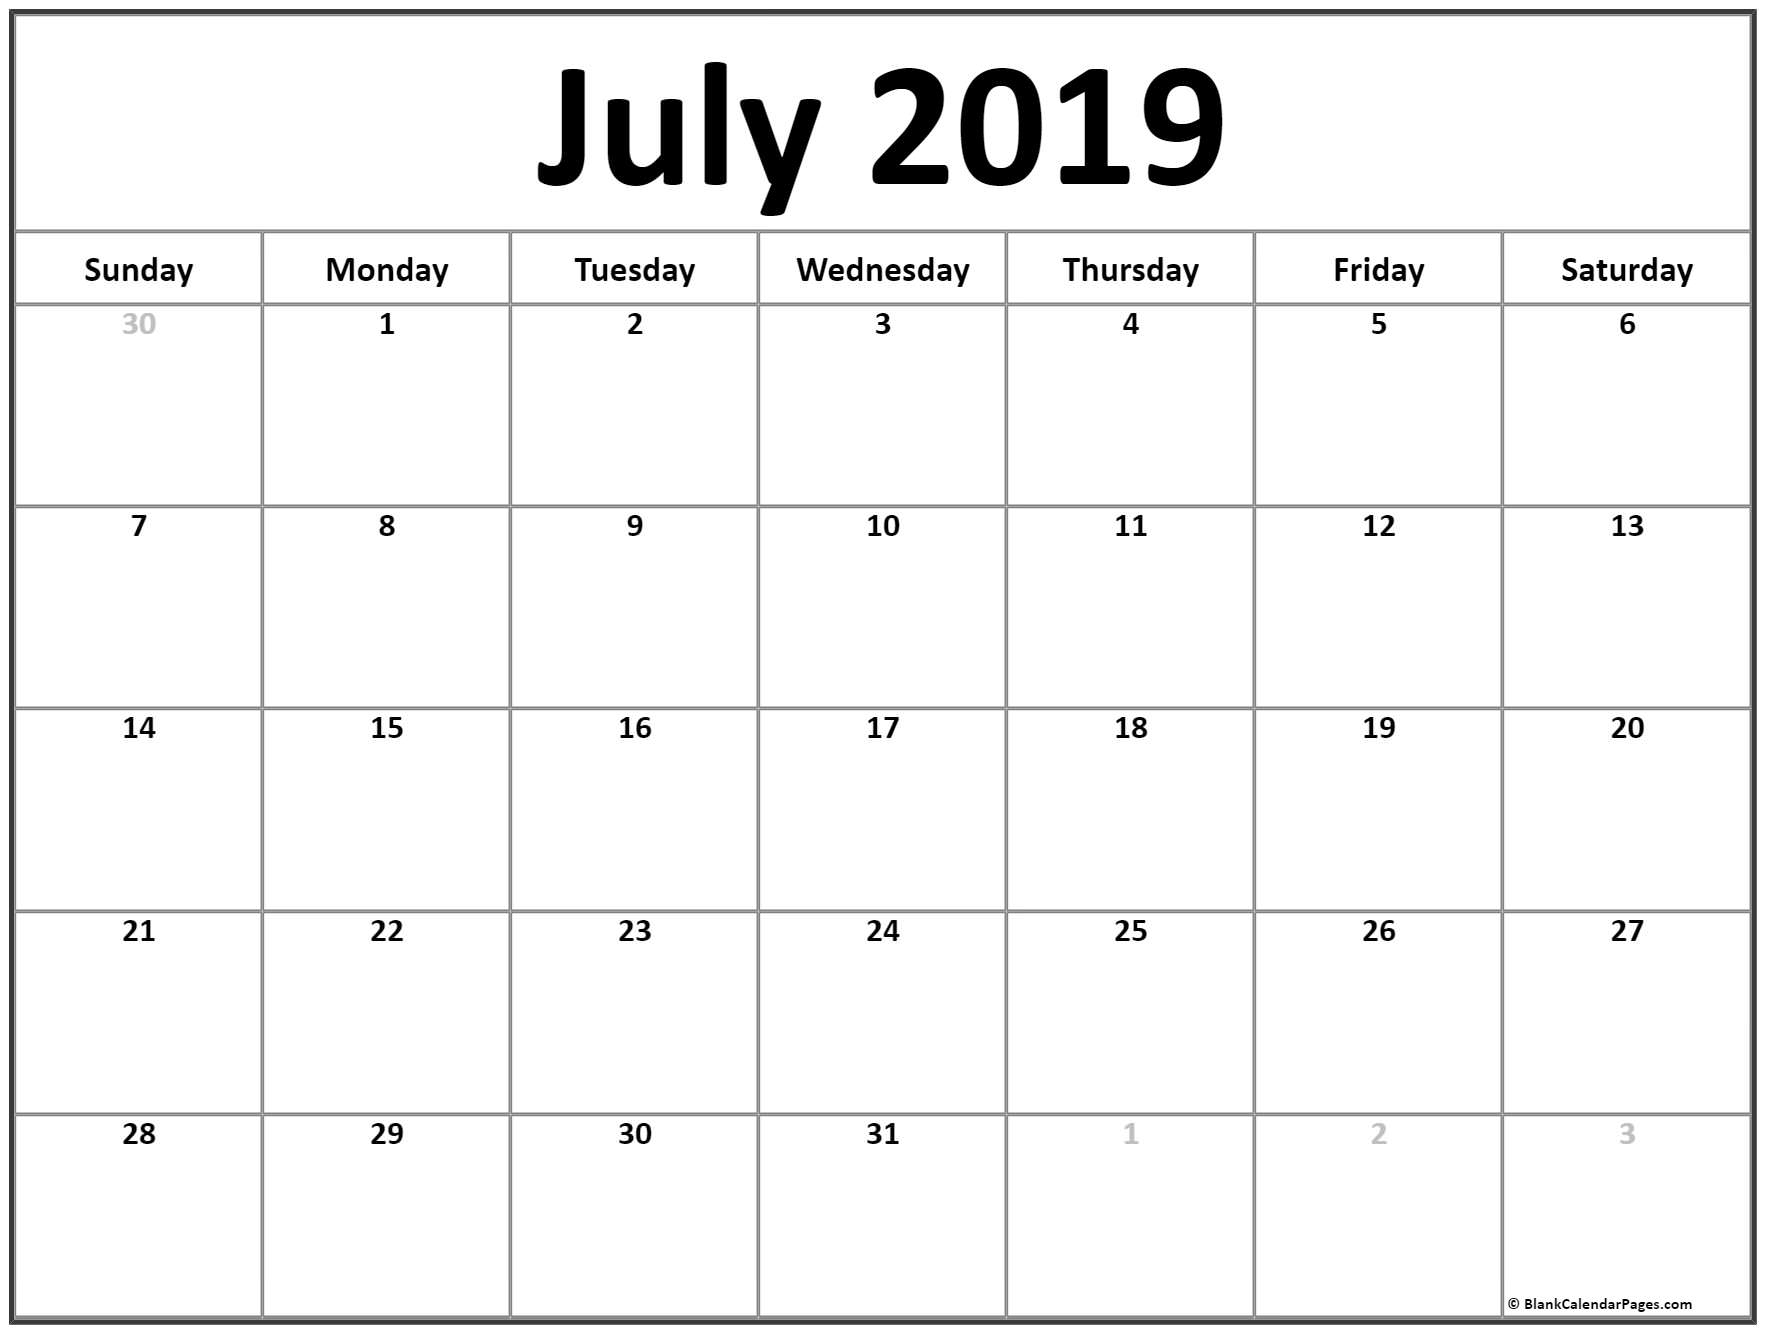 July 2019 Calendar | Free Printable Monthly Calendars in Free At A Glance Editable Calendar July 2019-June 2020